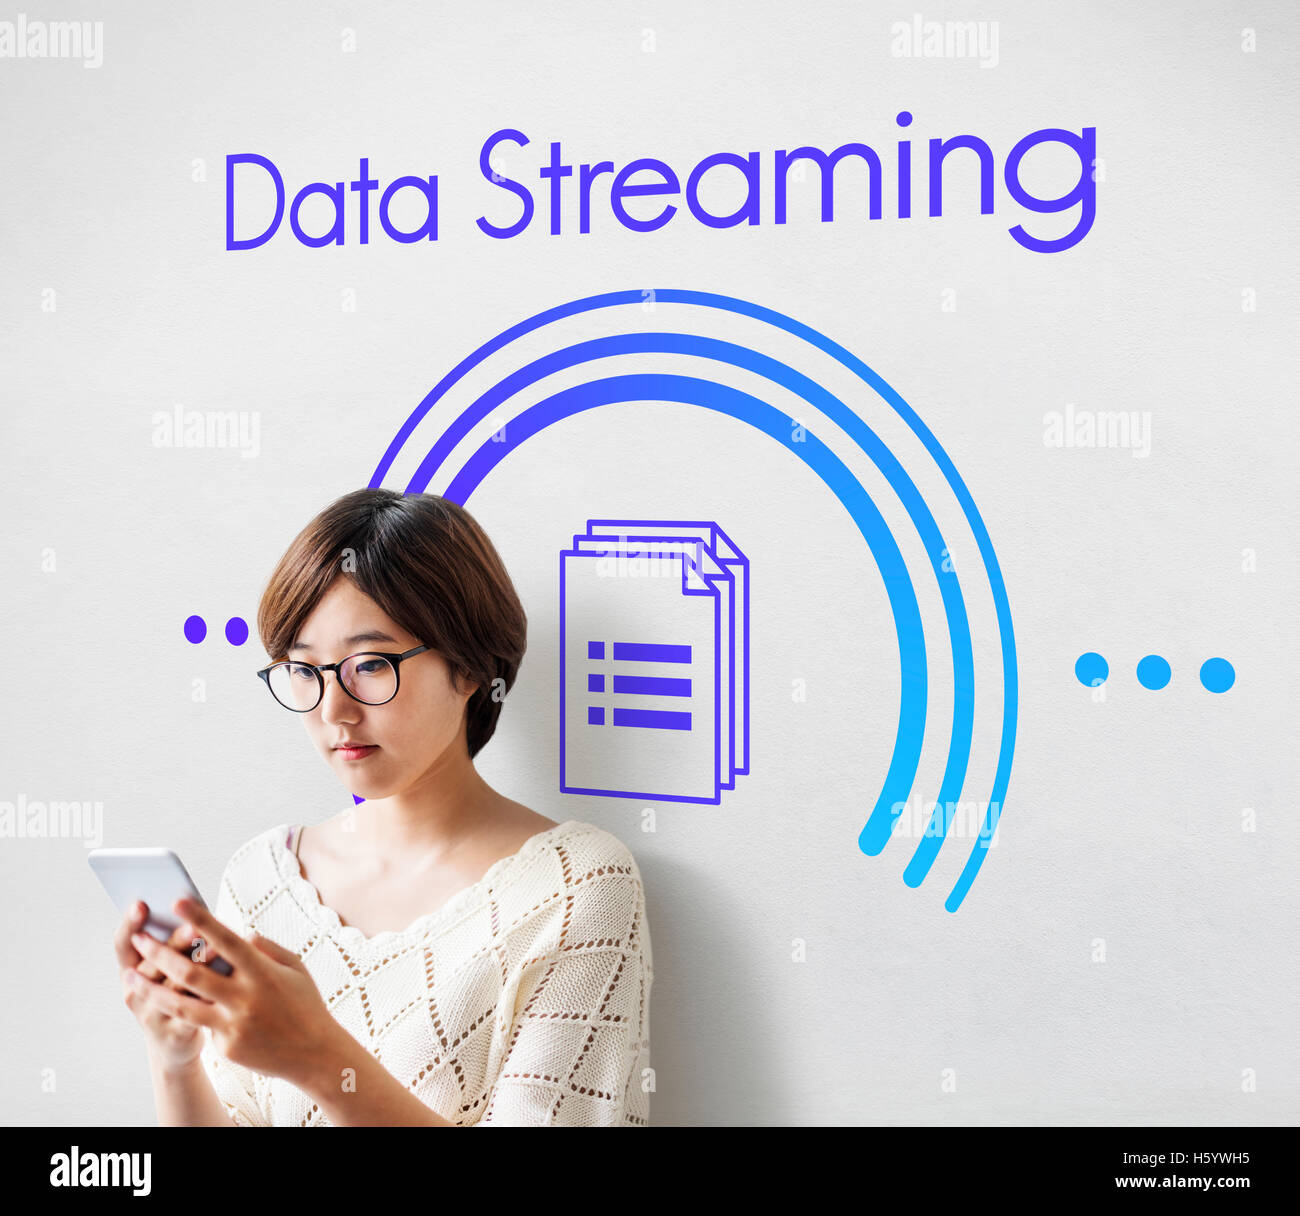 Data Streaming Connection Computer Technology Concept - Stock Image